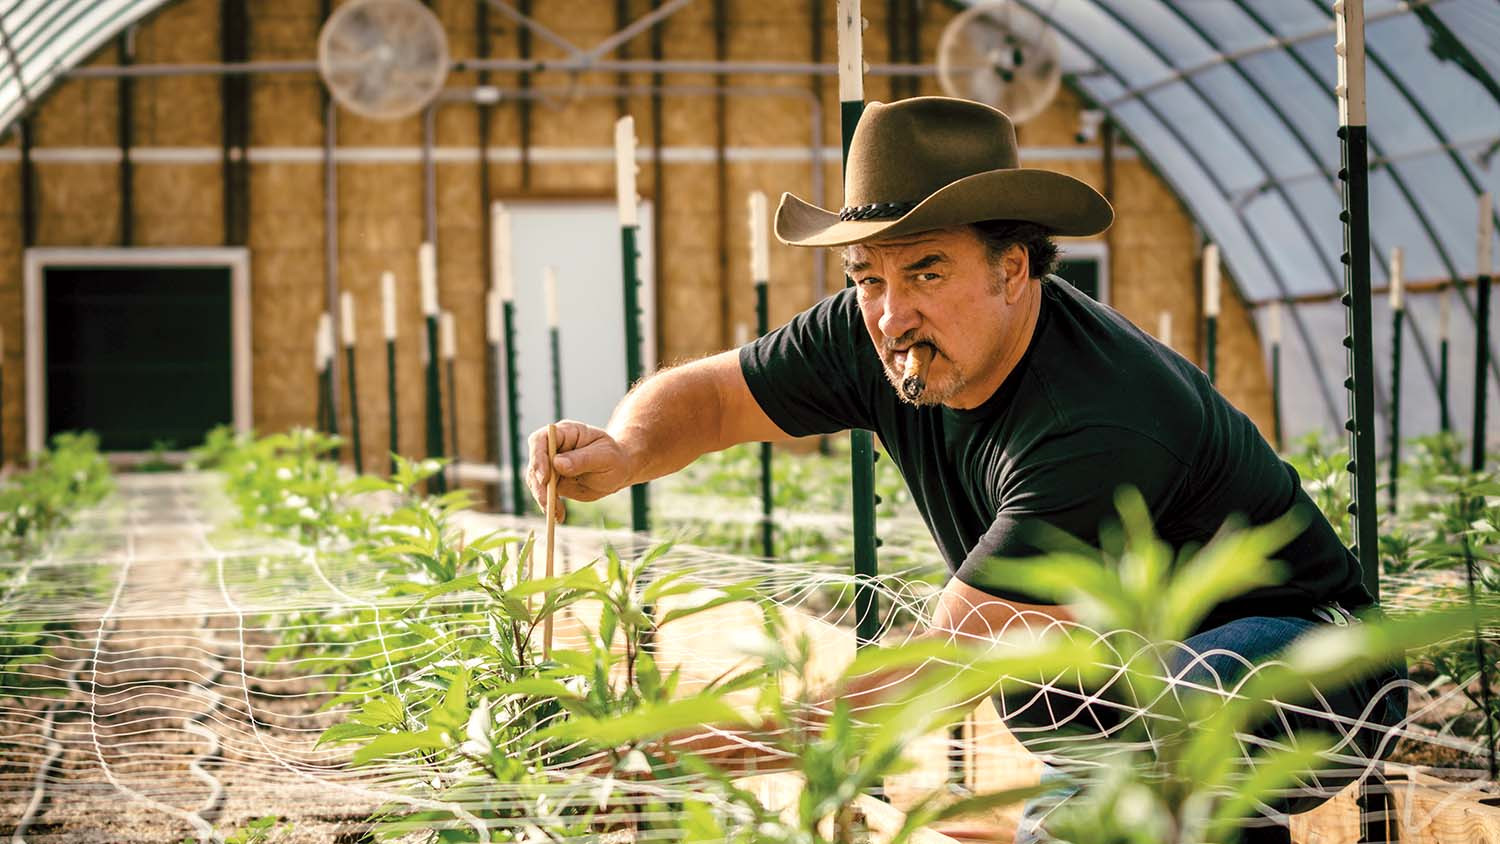 Jim Belushi on the Pain of Brother John's Death and His New Chapter as a Cannabis Farmer